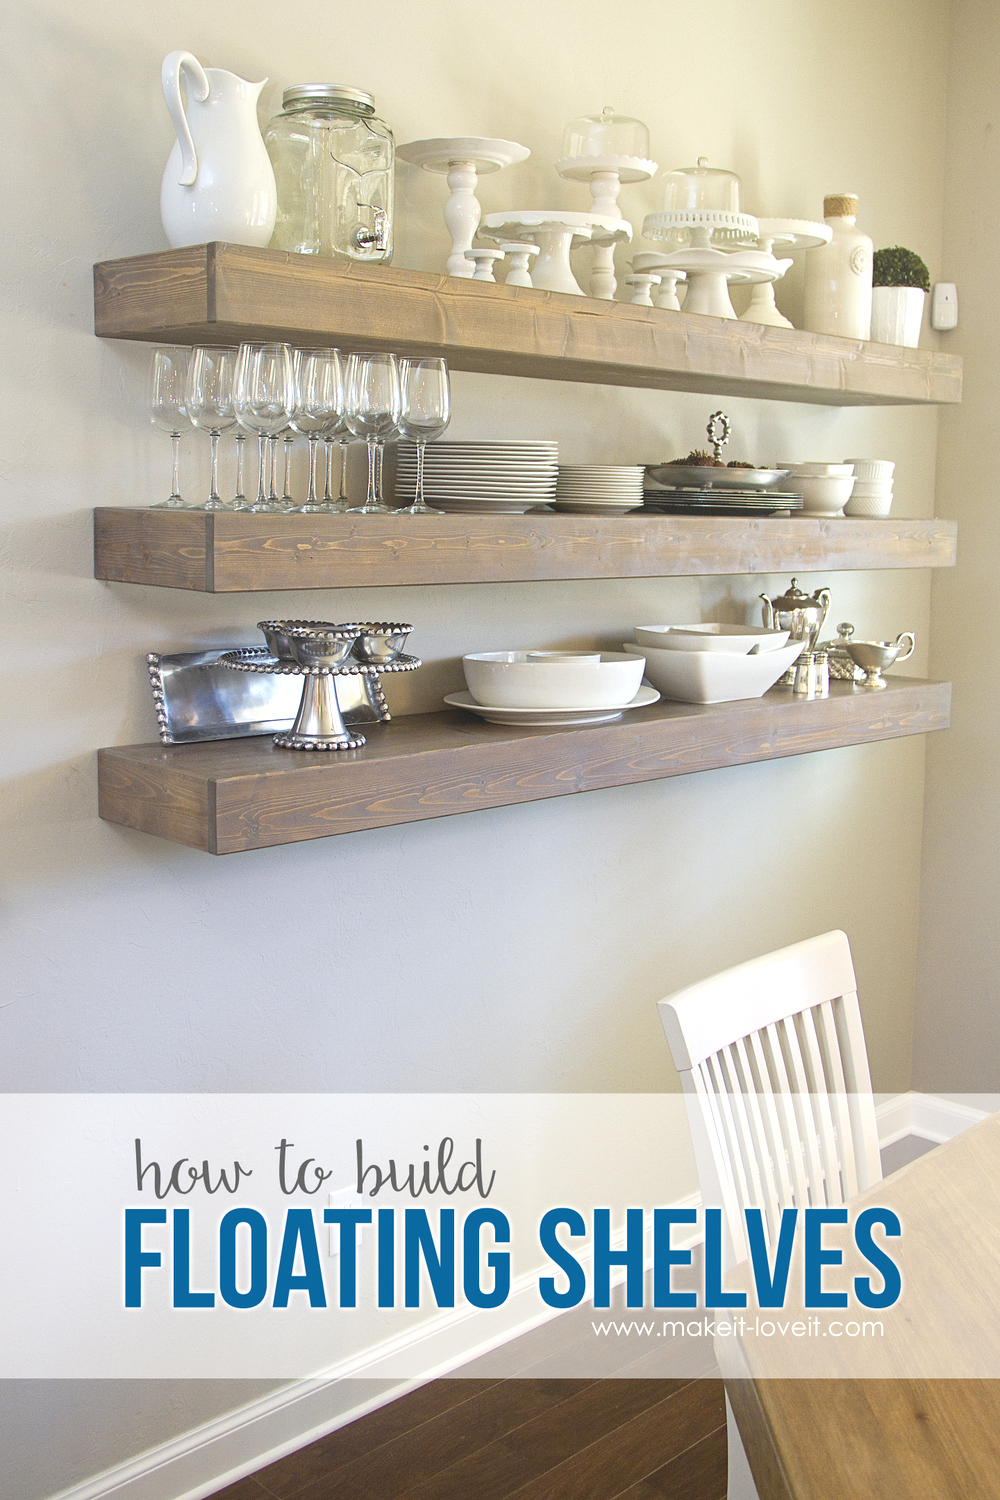 how build simple floating shelves for any room the house img inches deep velcro command strips weight keyhole shelving making kitchen cherry fireplace mantel shelf oak stove beams